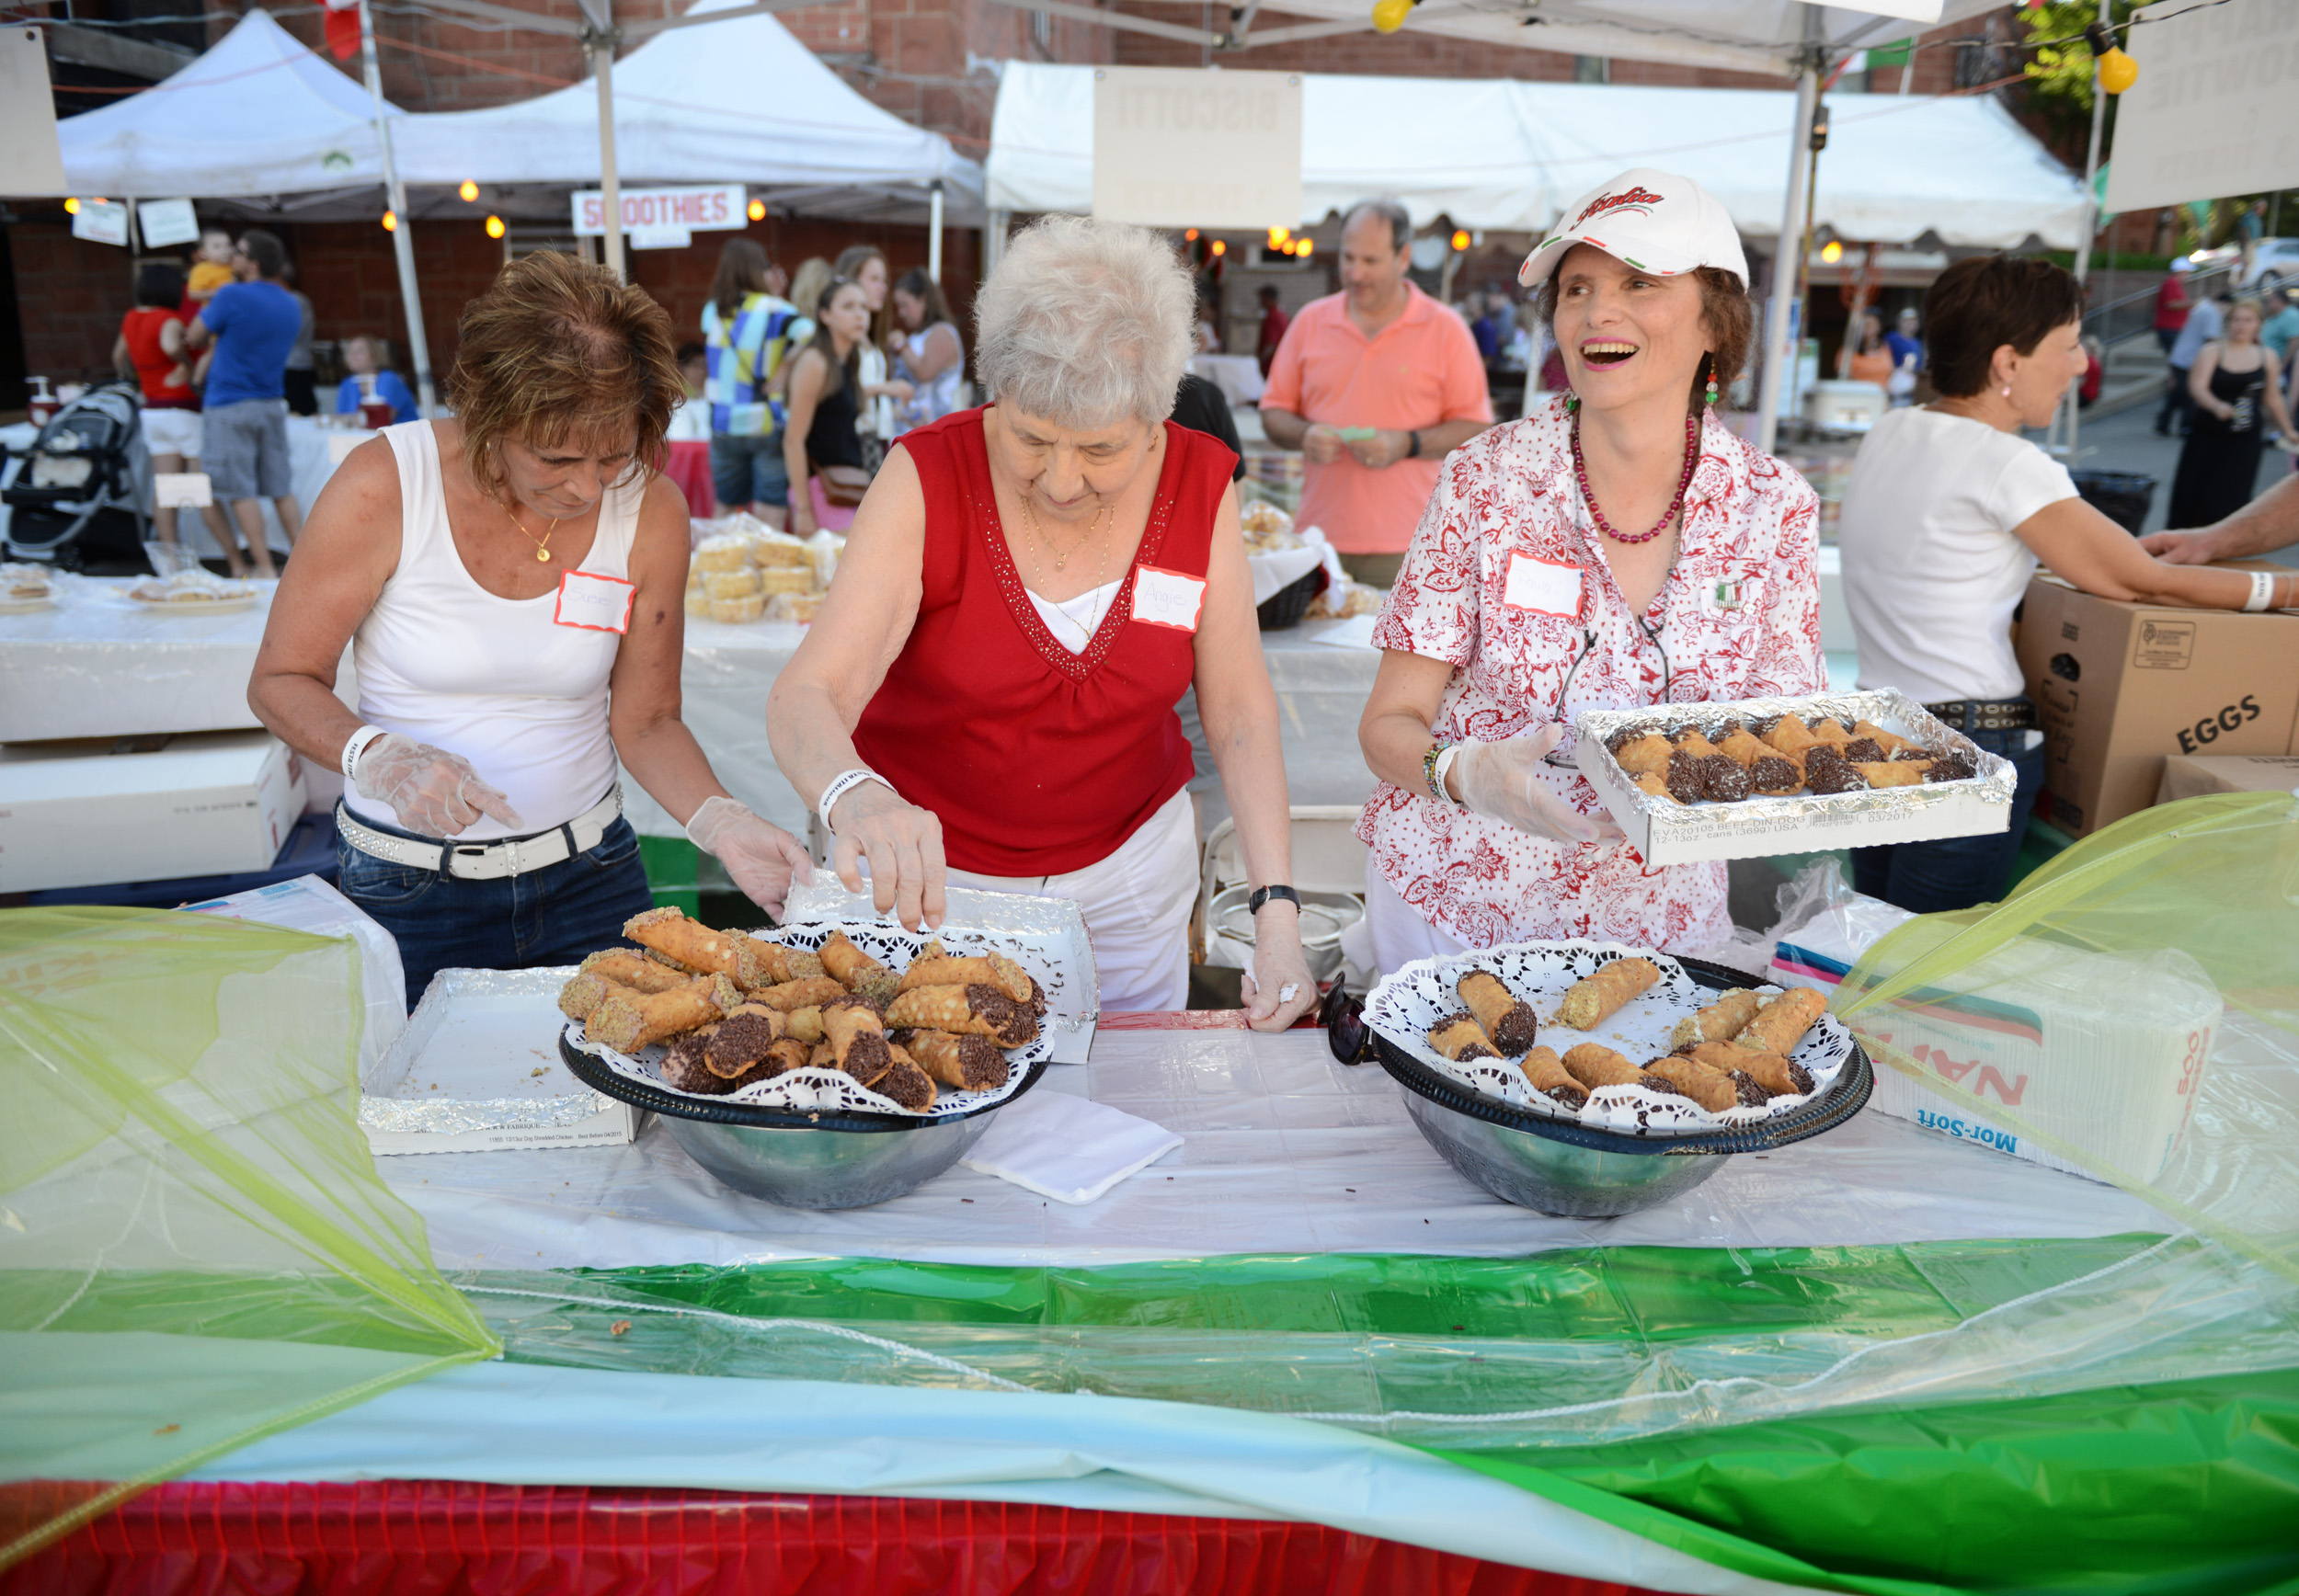 (from left) Sue Landis, of New Kensington, Angie Martino, of West Deer Township, and Paula Silowash, of Penn Township but formerly of New Kensington, work together to display cannoli at the Festa Italiana at Mount Saint Peter Parish in New Kensington on Thursday, July 30, 2015.